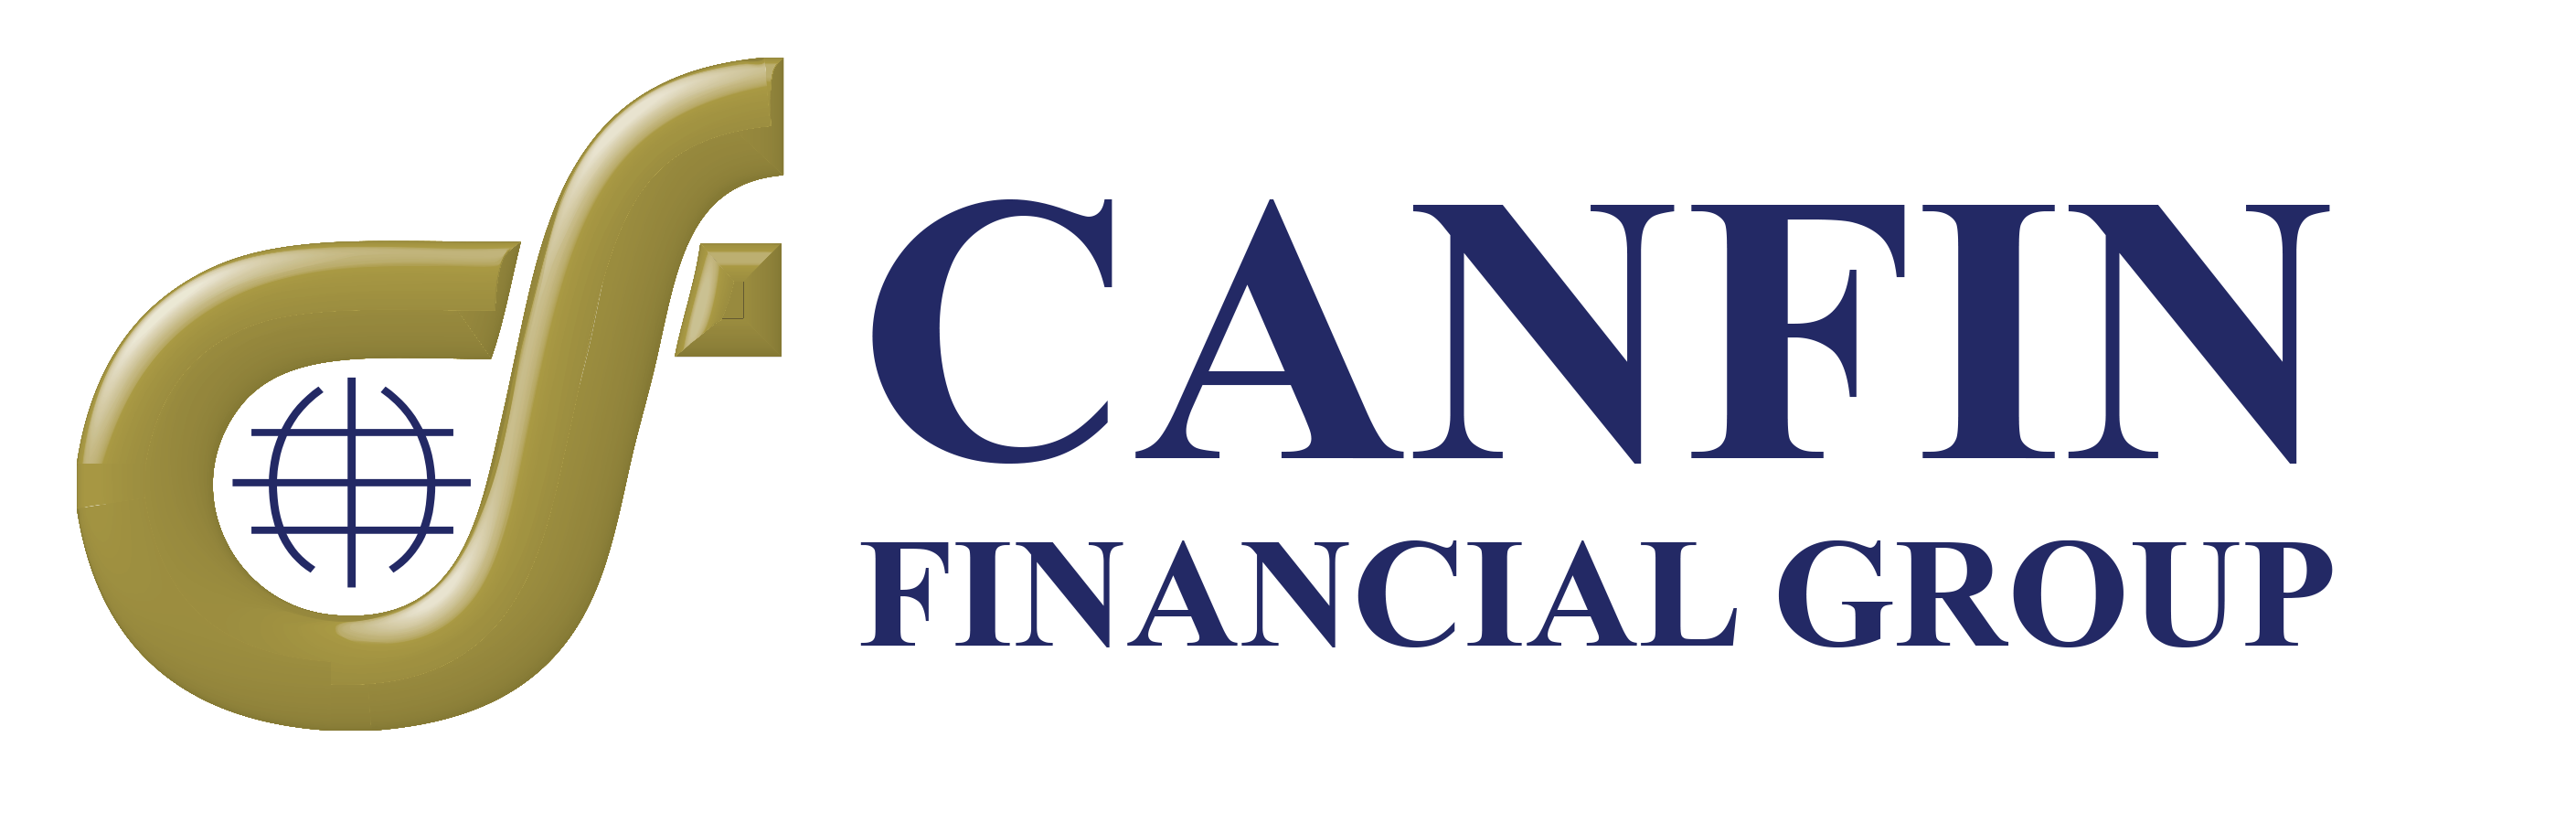 Joshua Bacchus - CANFIN Financial Group - Logo